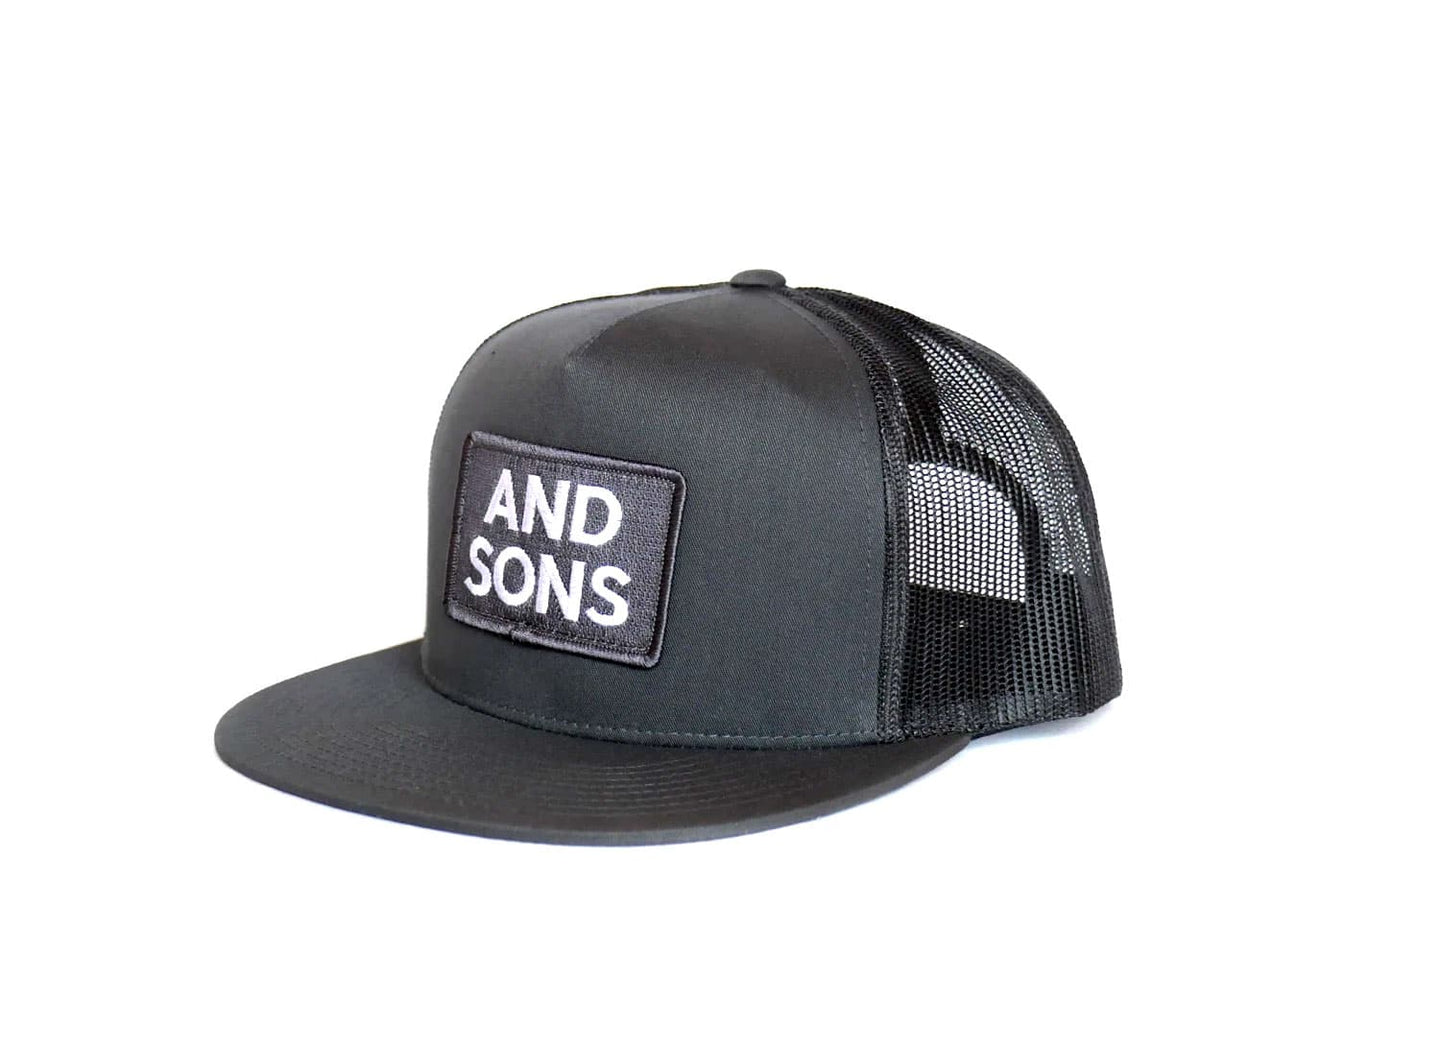 And Sons Logo on grey trucker hat